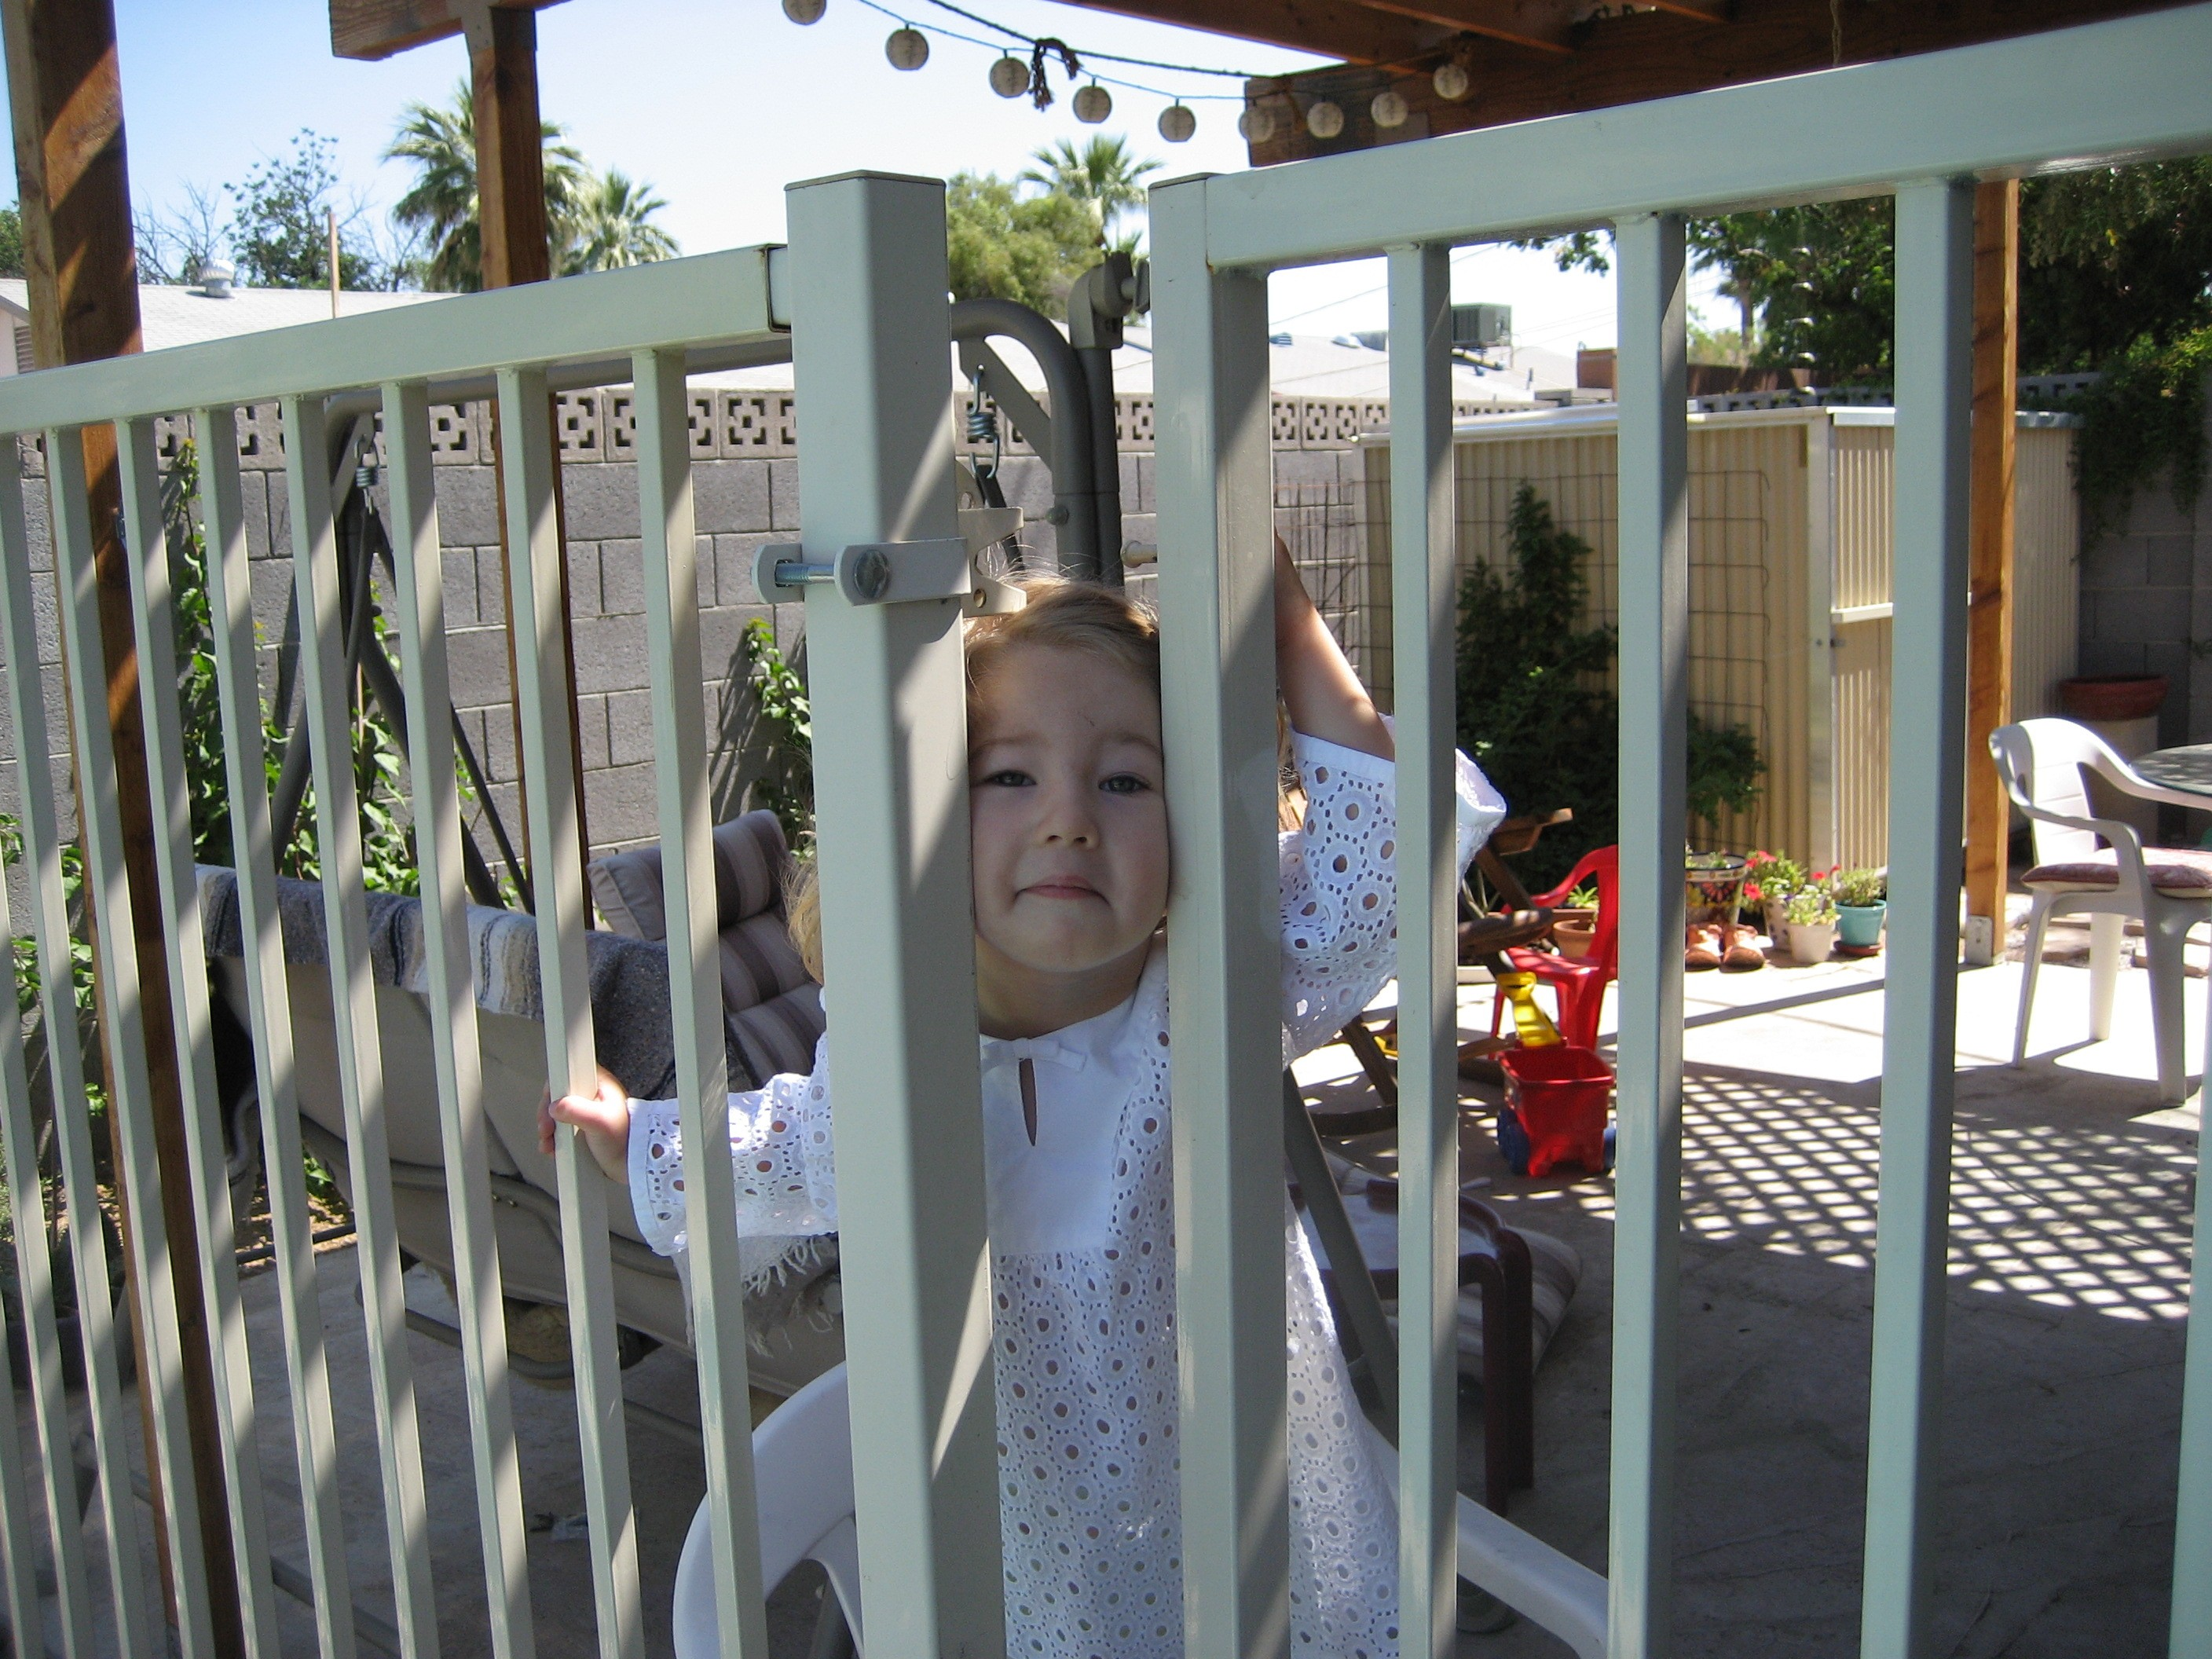 Child Safety Lock Locks Products Baby Safety Products